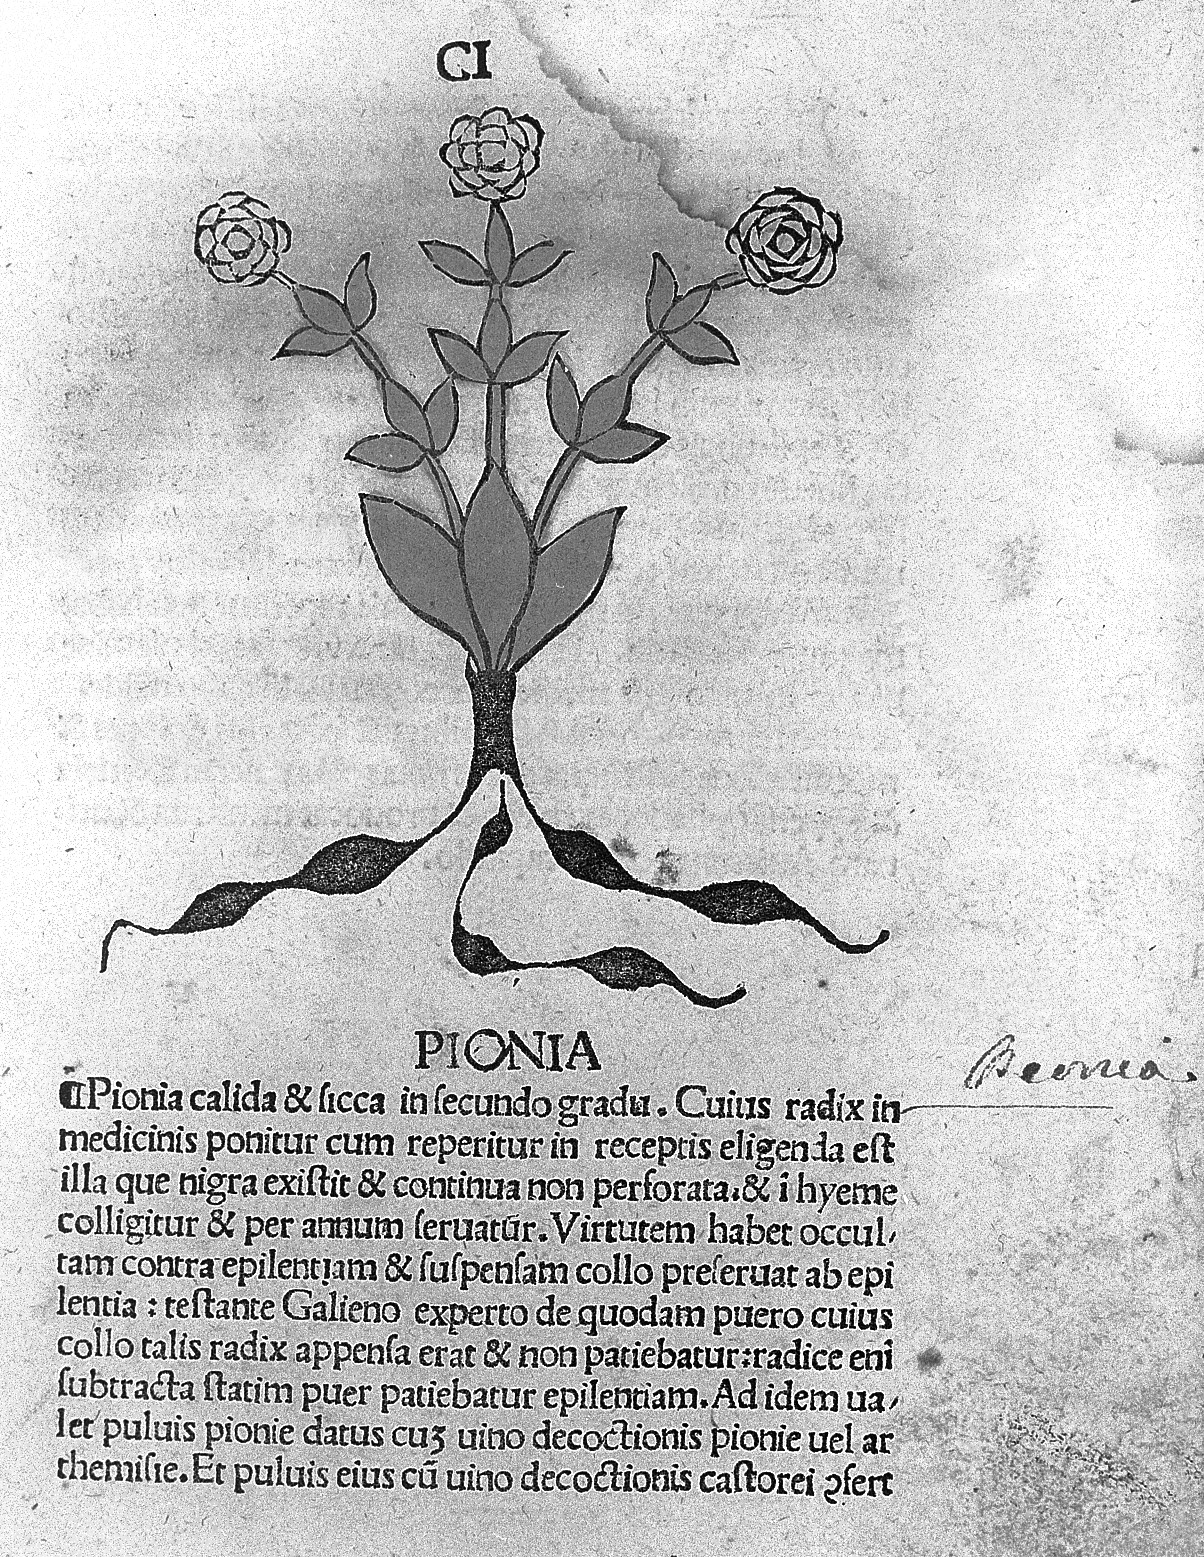 File:Pionia, from Vicneza, Herbarius 1491 Wellcome L0012999.jpg